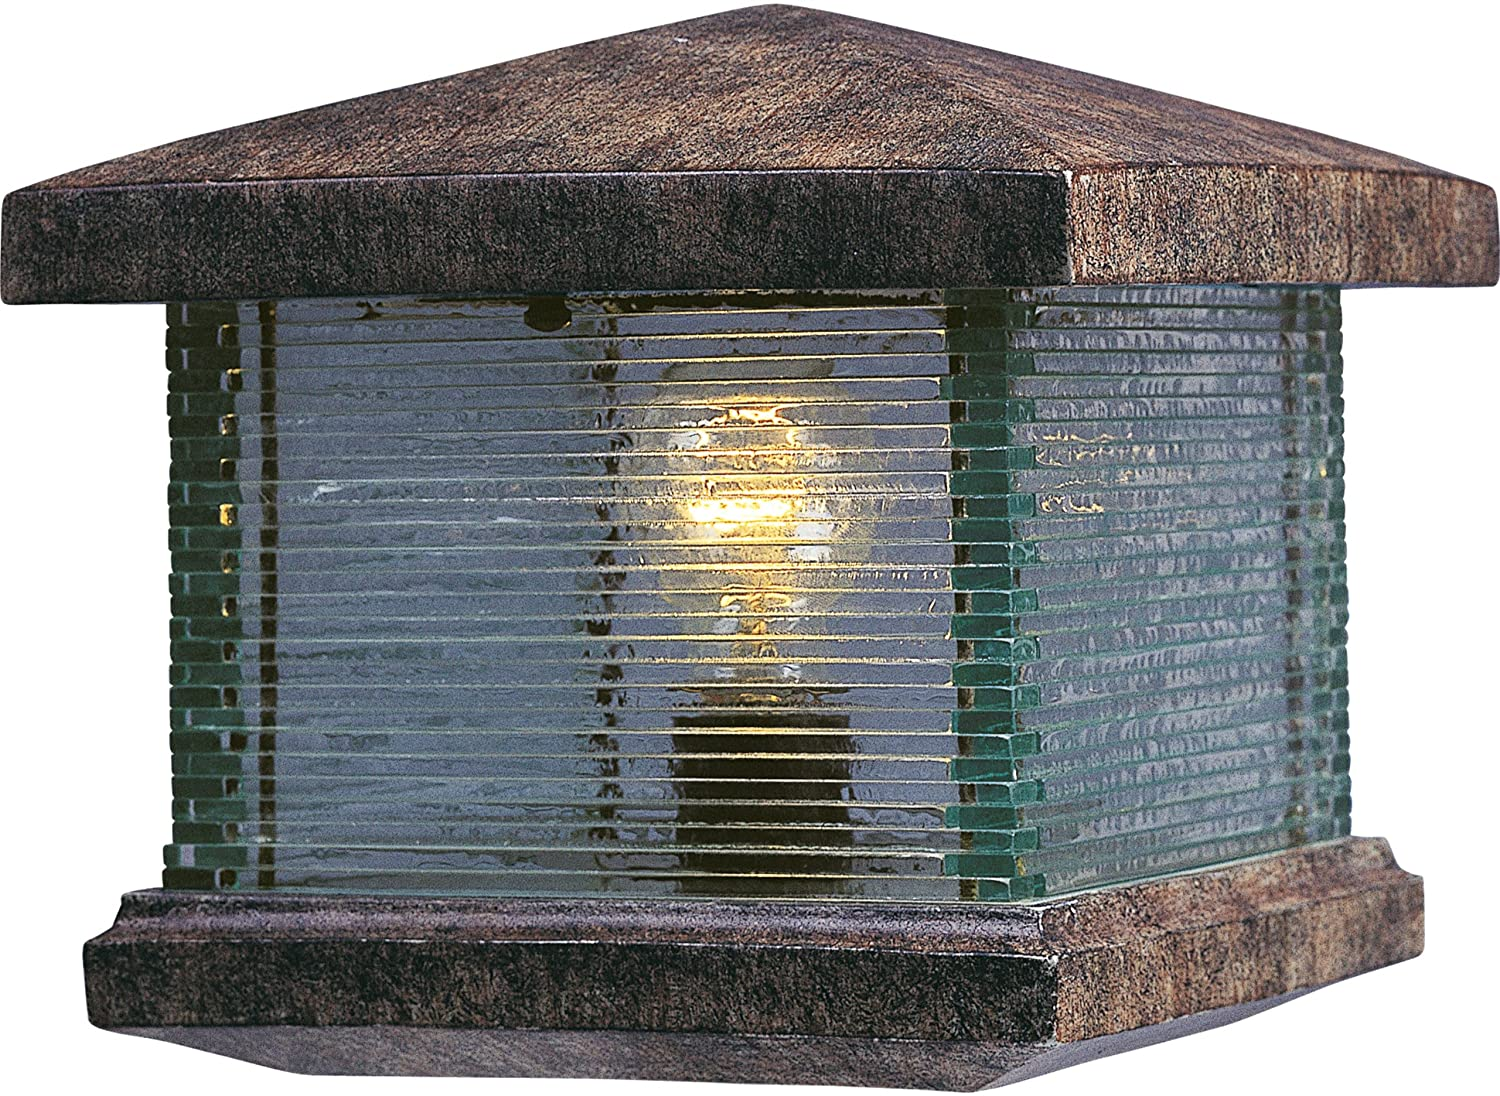 Maxim 48736clet triumph vx 1 light outdoor deck lantern earth tone maxim 48736clet triumph vx 1 light outdoor deck lantern earth tone finish clear glass mb incandescent incandescent bulb 40w max dry safety rating arubaitofo Image collections